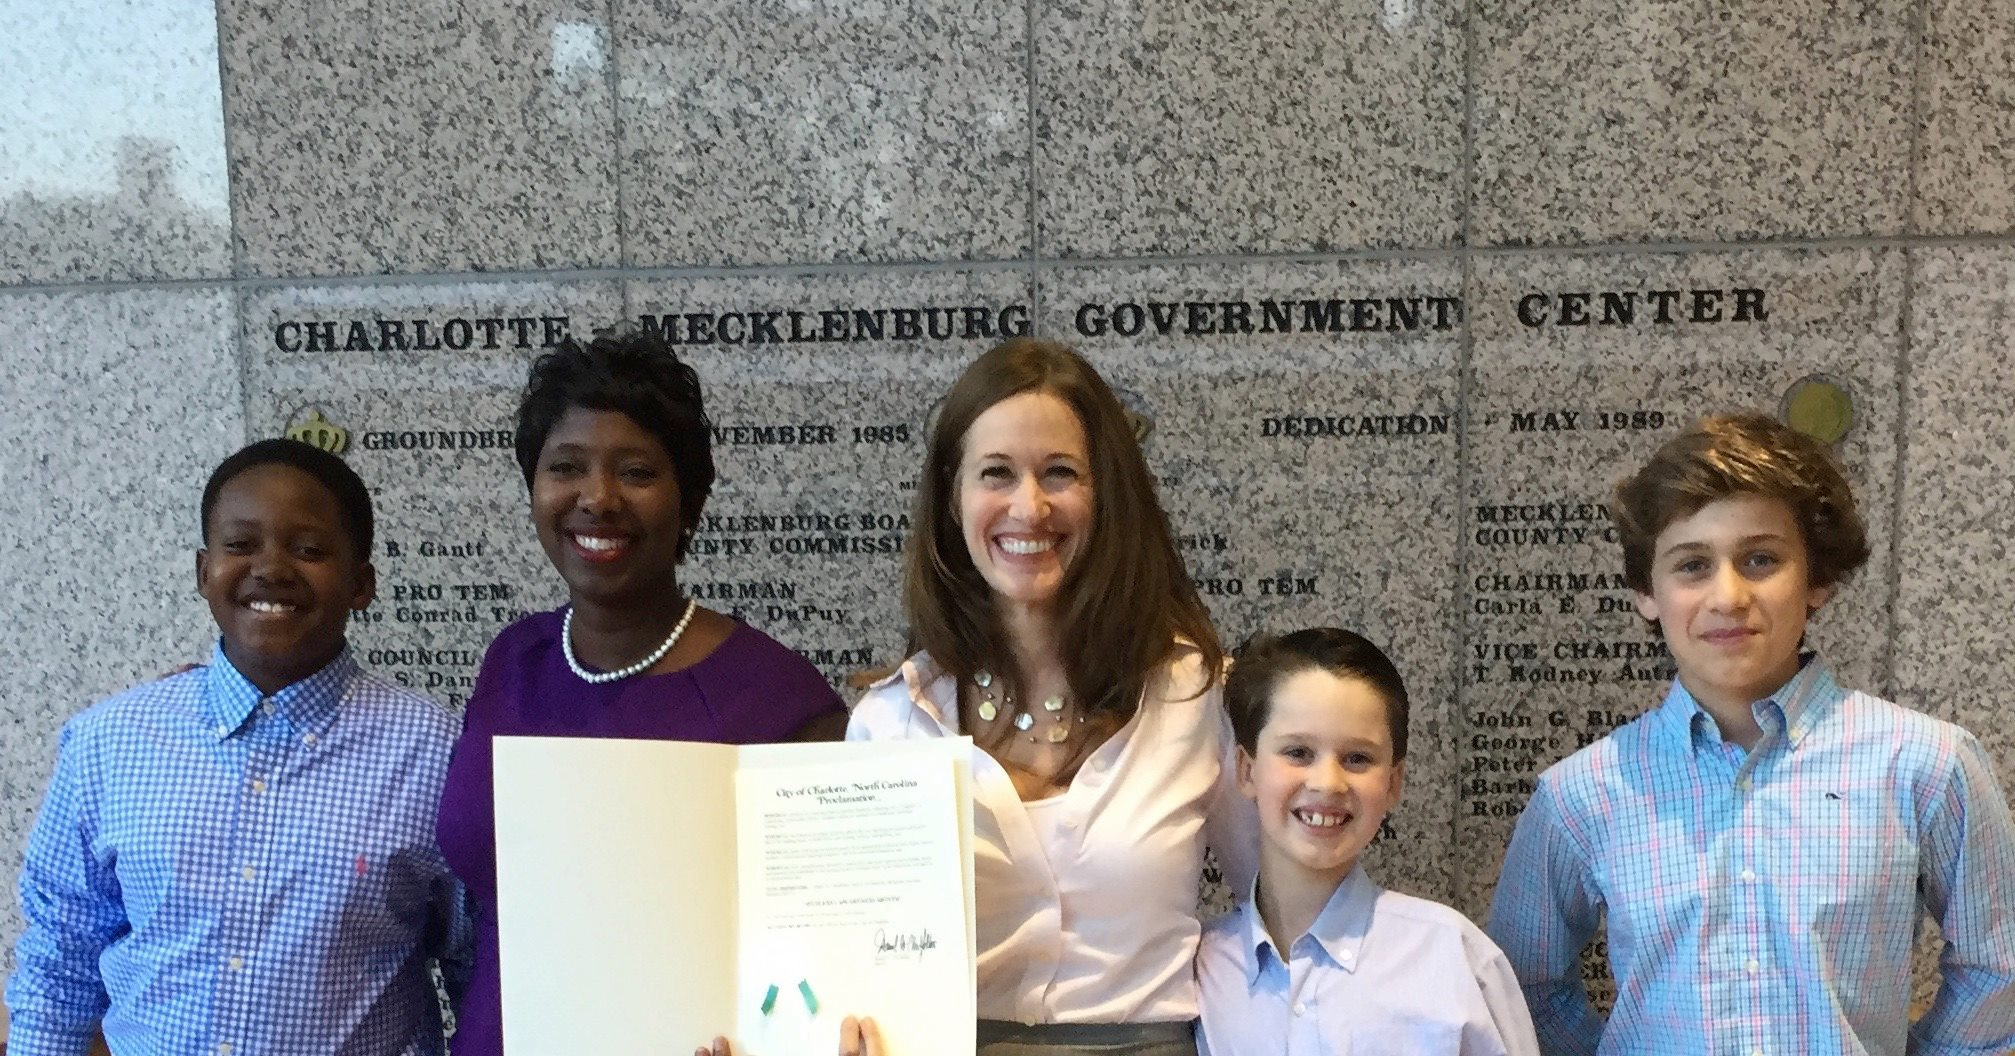 Accepting Charlotte Proclamation